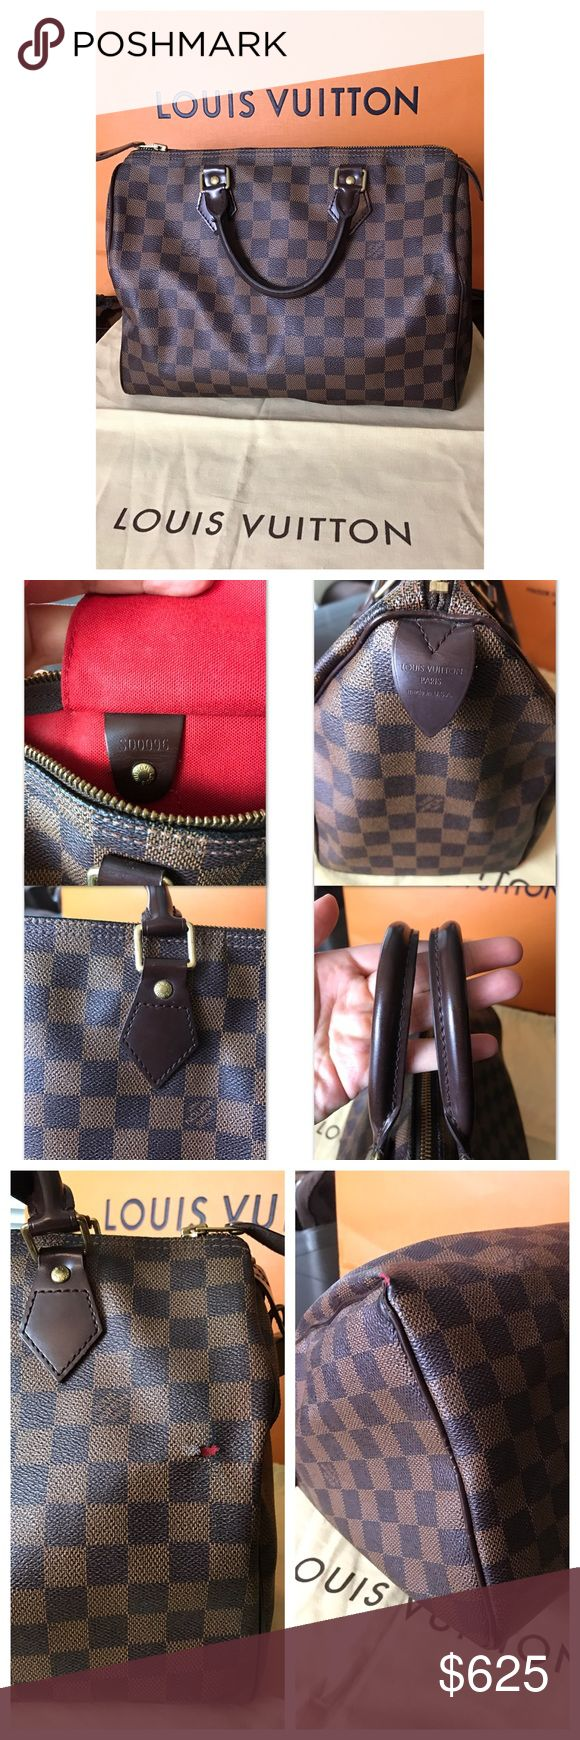 AUTHENTIC Louis Vuitton speedy 30 damier ebene Authentic pre owned Louis Vuitton speedy 30 damier ebene, it has to flaws as picture shown above. Everything else is in great condition. This will come with dustbag. NO TRADE. Serious inquiries only. Thank you. Louis Vuitton Bags Satchels